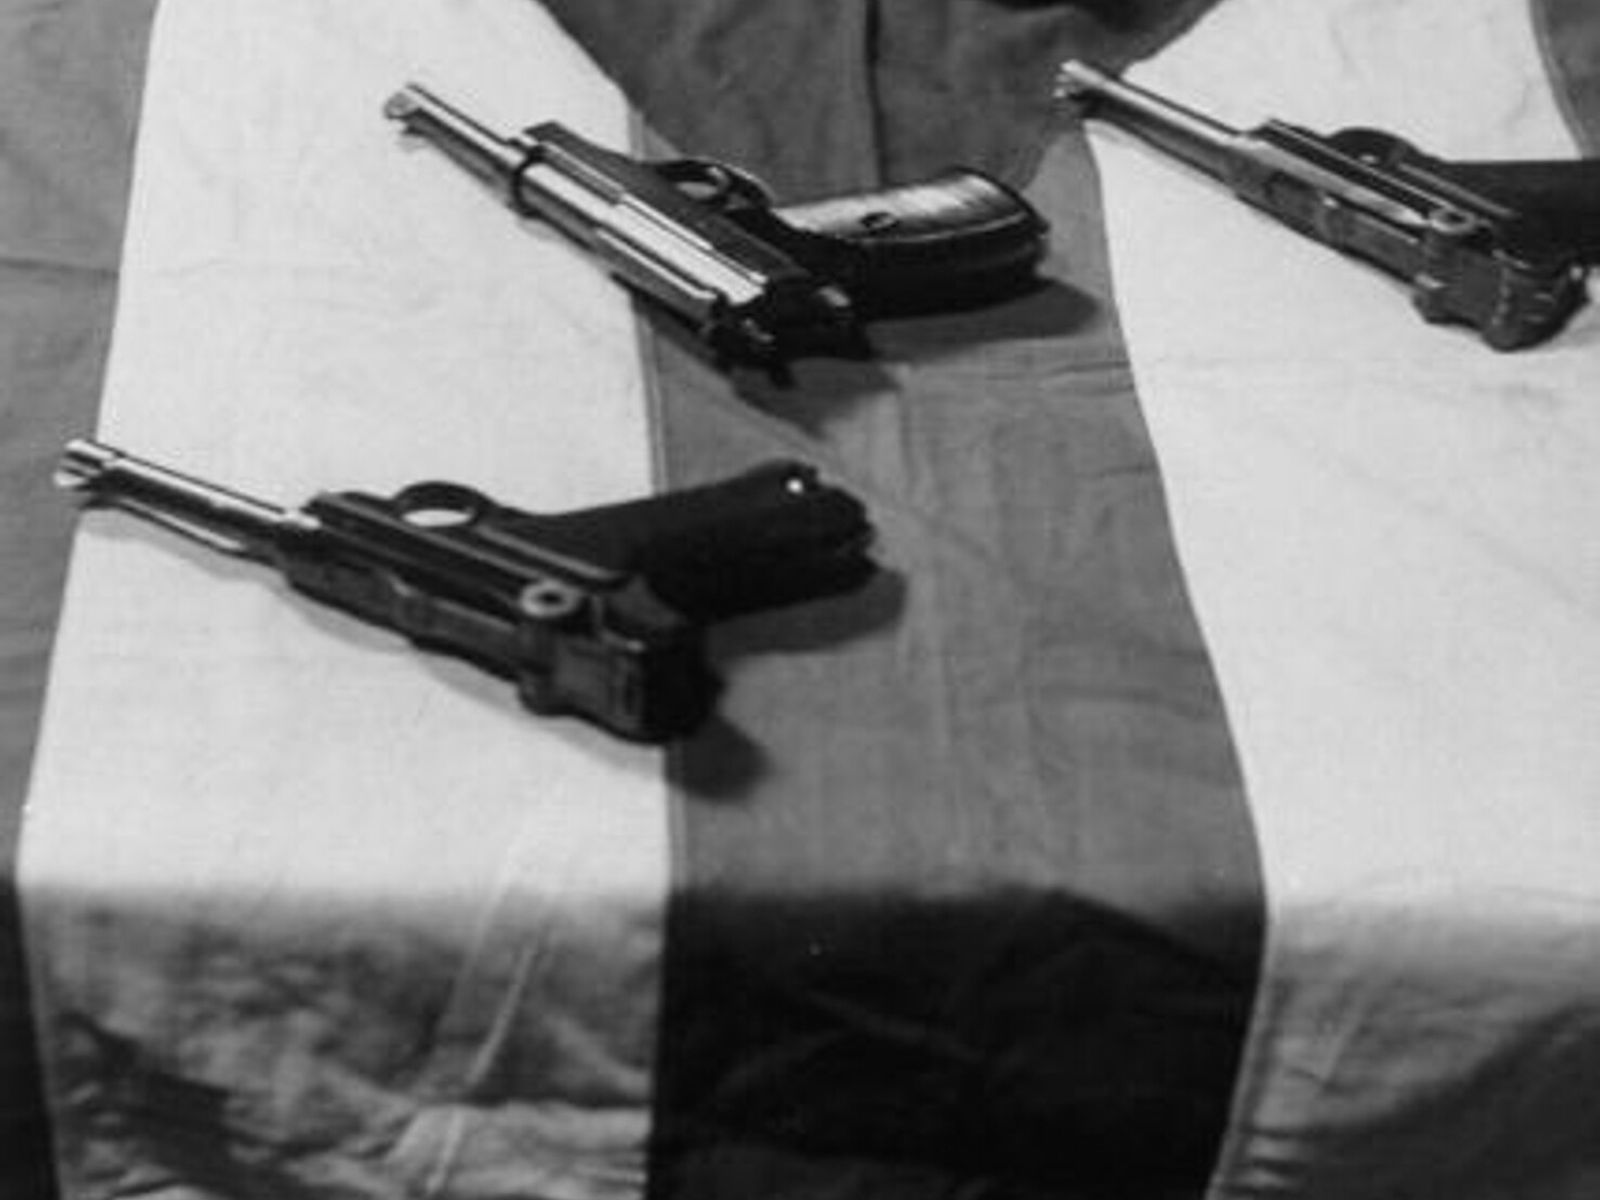 Four Puerto Rican nationalists opened fire and waved their territoriy's flag in the House gallery in ...